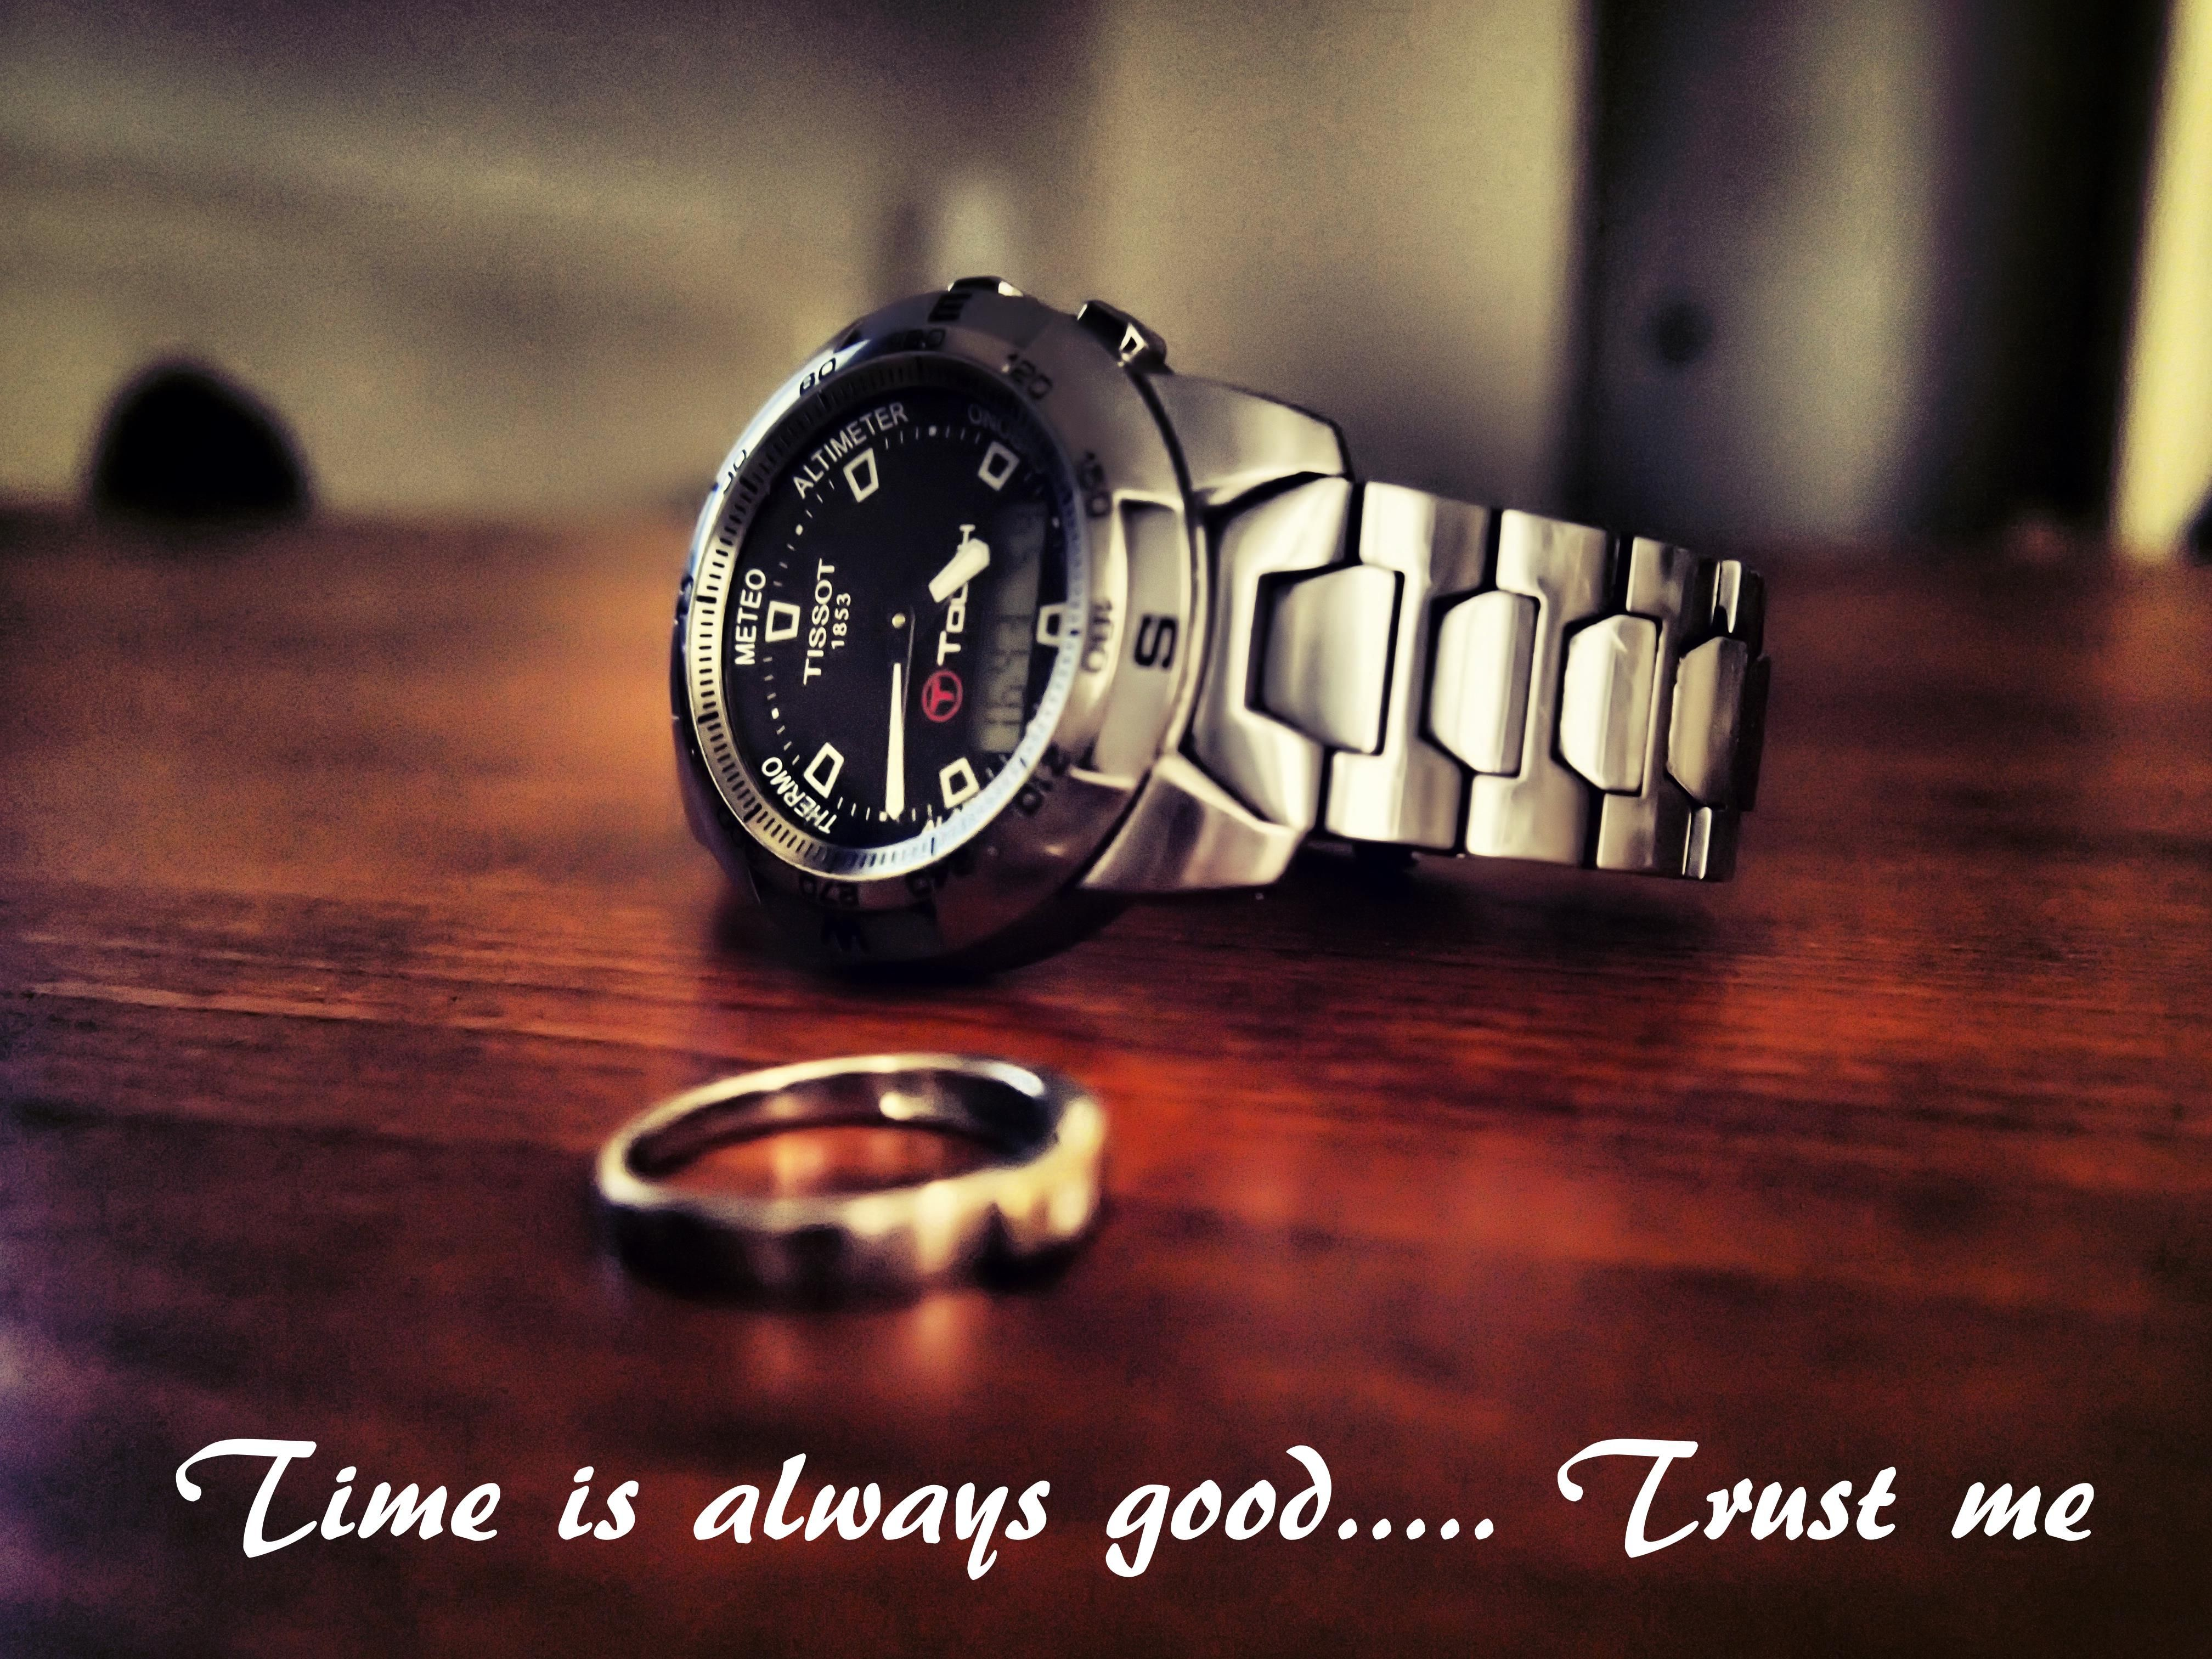 Time Management Quotes Hd Wallpapers For Bloggers Watch Wallpaper Iphone Watch Time Management Quotes